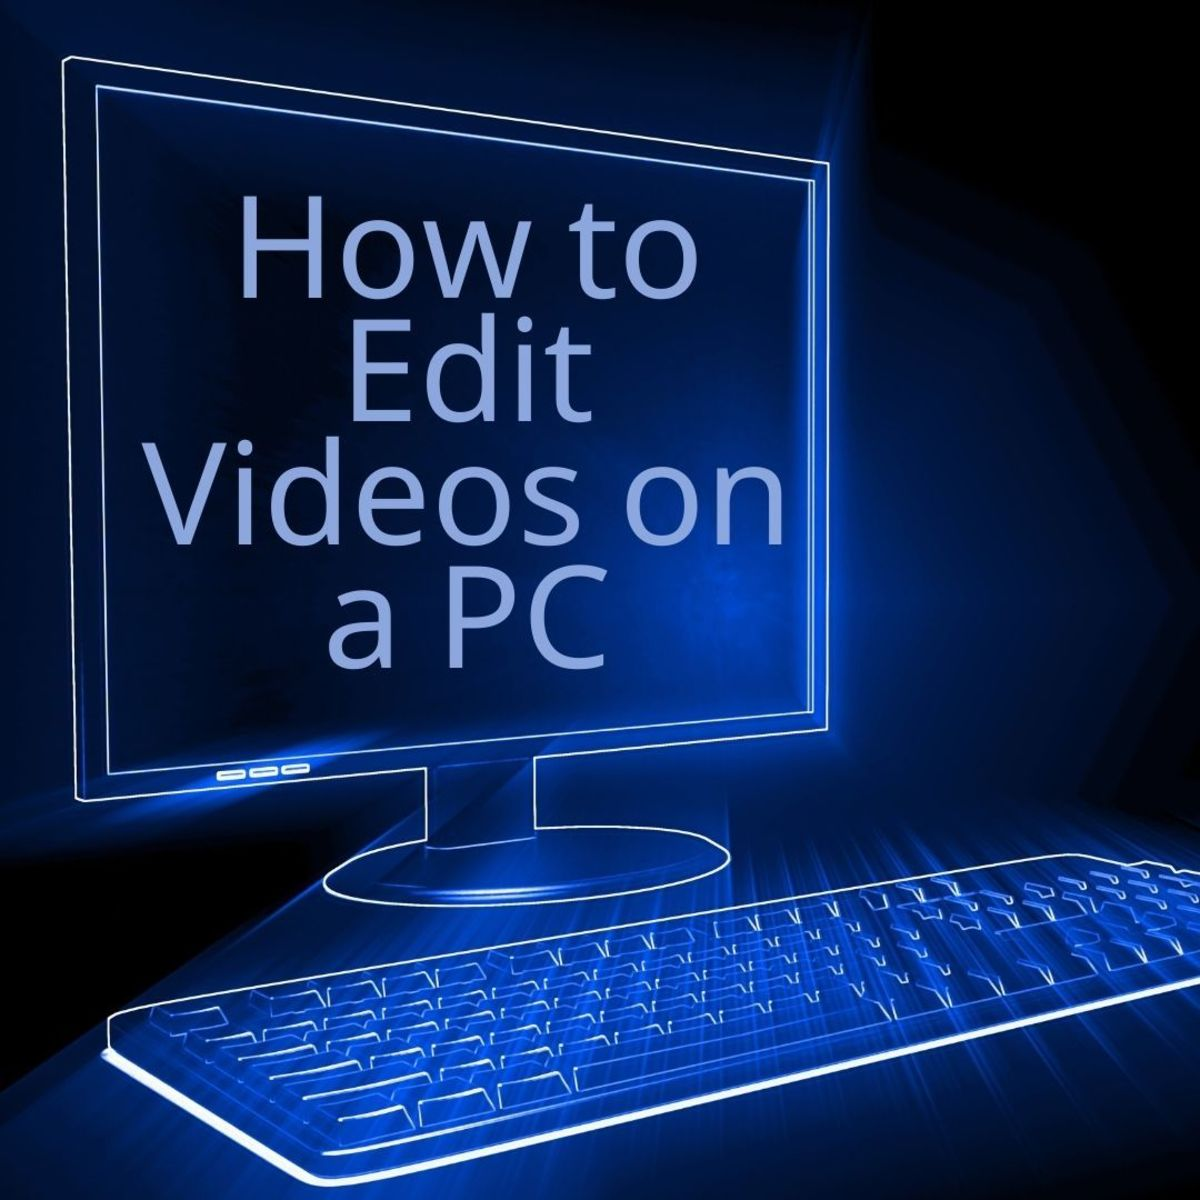 Learn how to edit videos on a PC